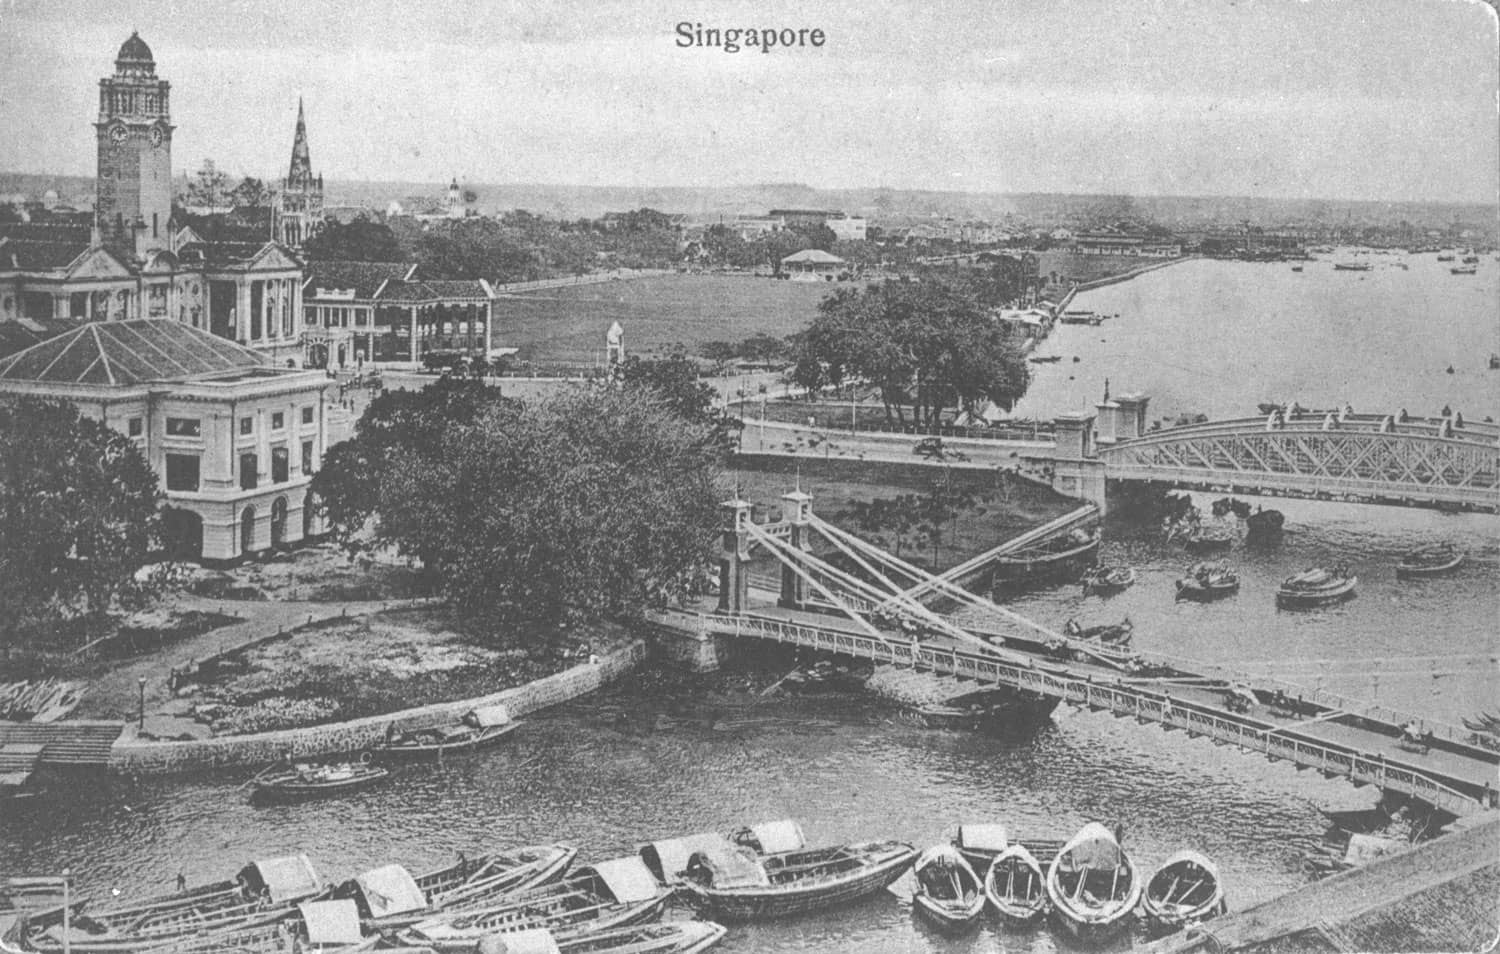 Mouth of the Singapore River, c. 1910